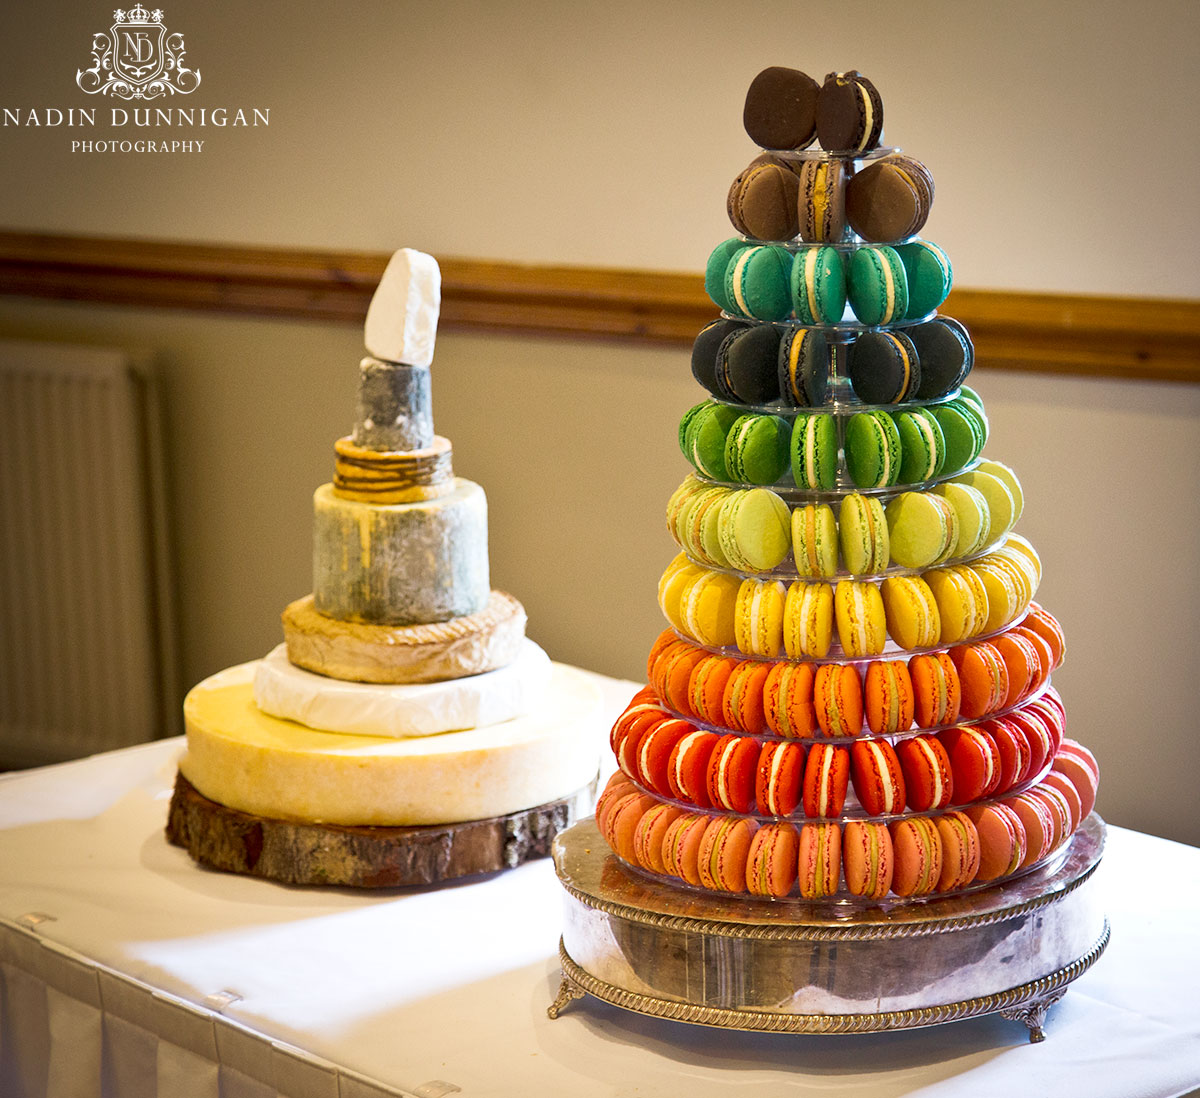 A french macaron tower and a cheese wedding cake, naked wedding cakes